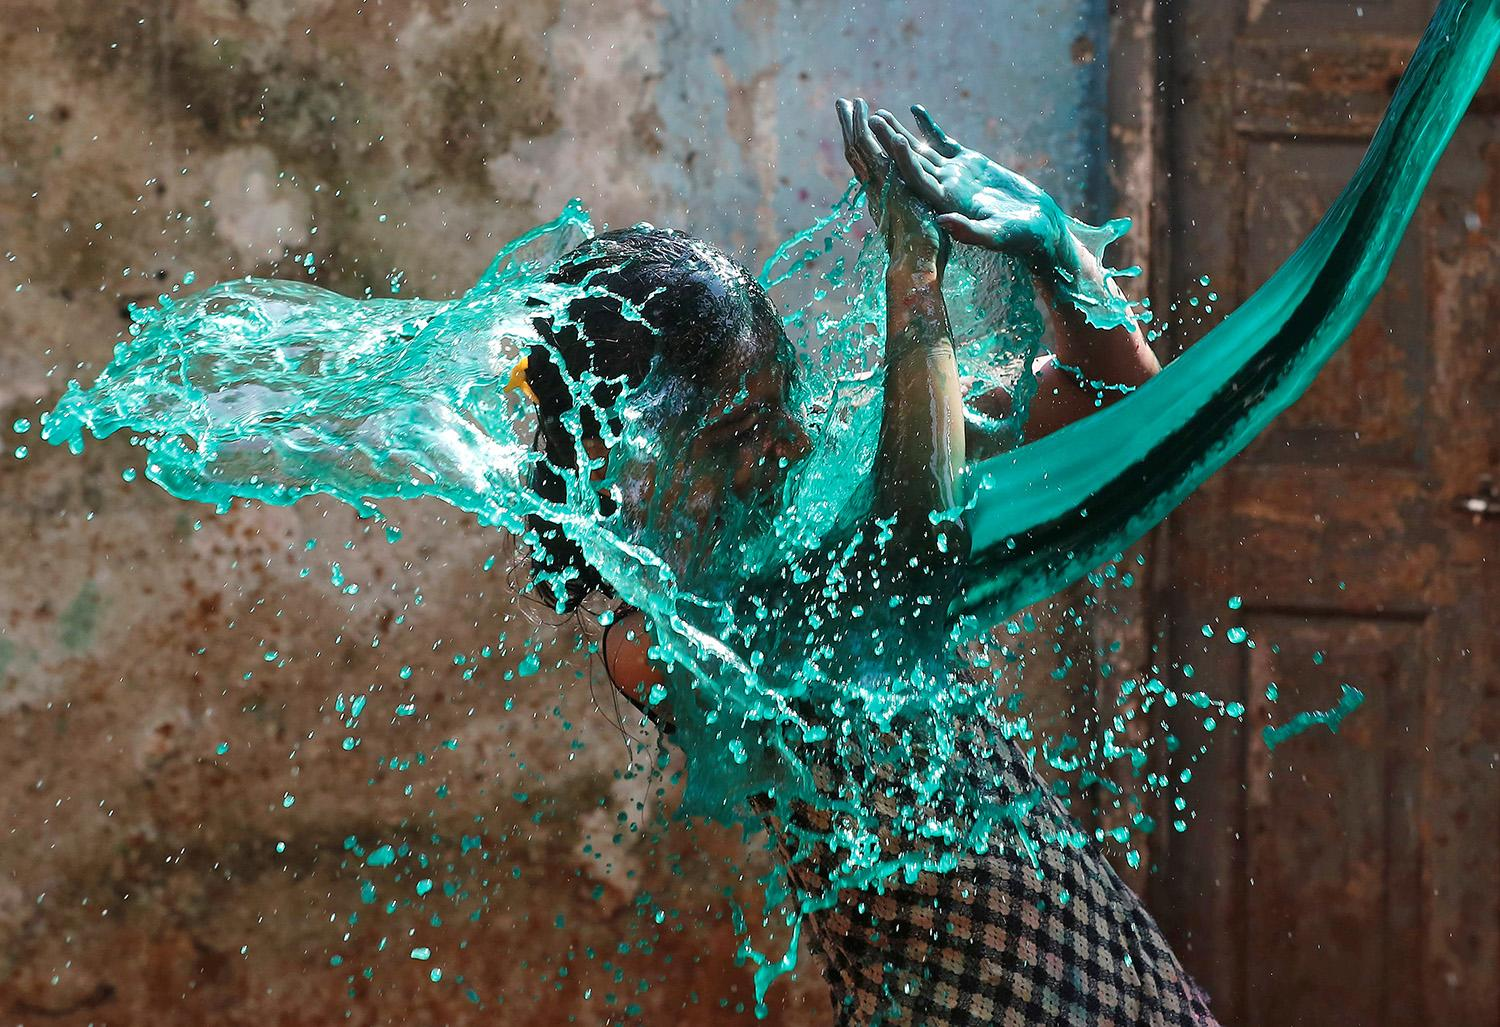 <p>A girl reacts as colored water is thrown on her face while celebrating Holi, the Festival of Colors, in Mumbai, India, March 13, 2017. (Shailesh Andrade/Reuters) </p>